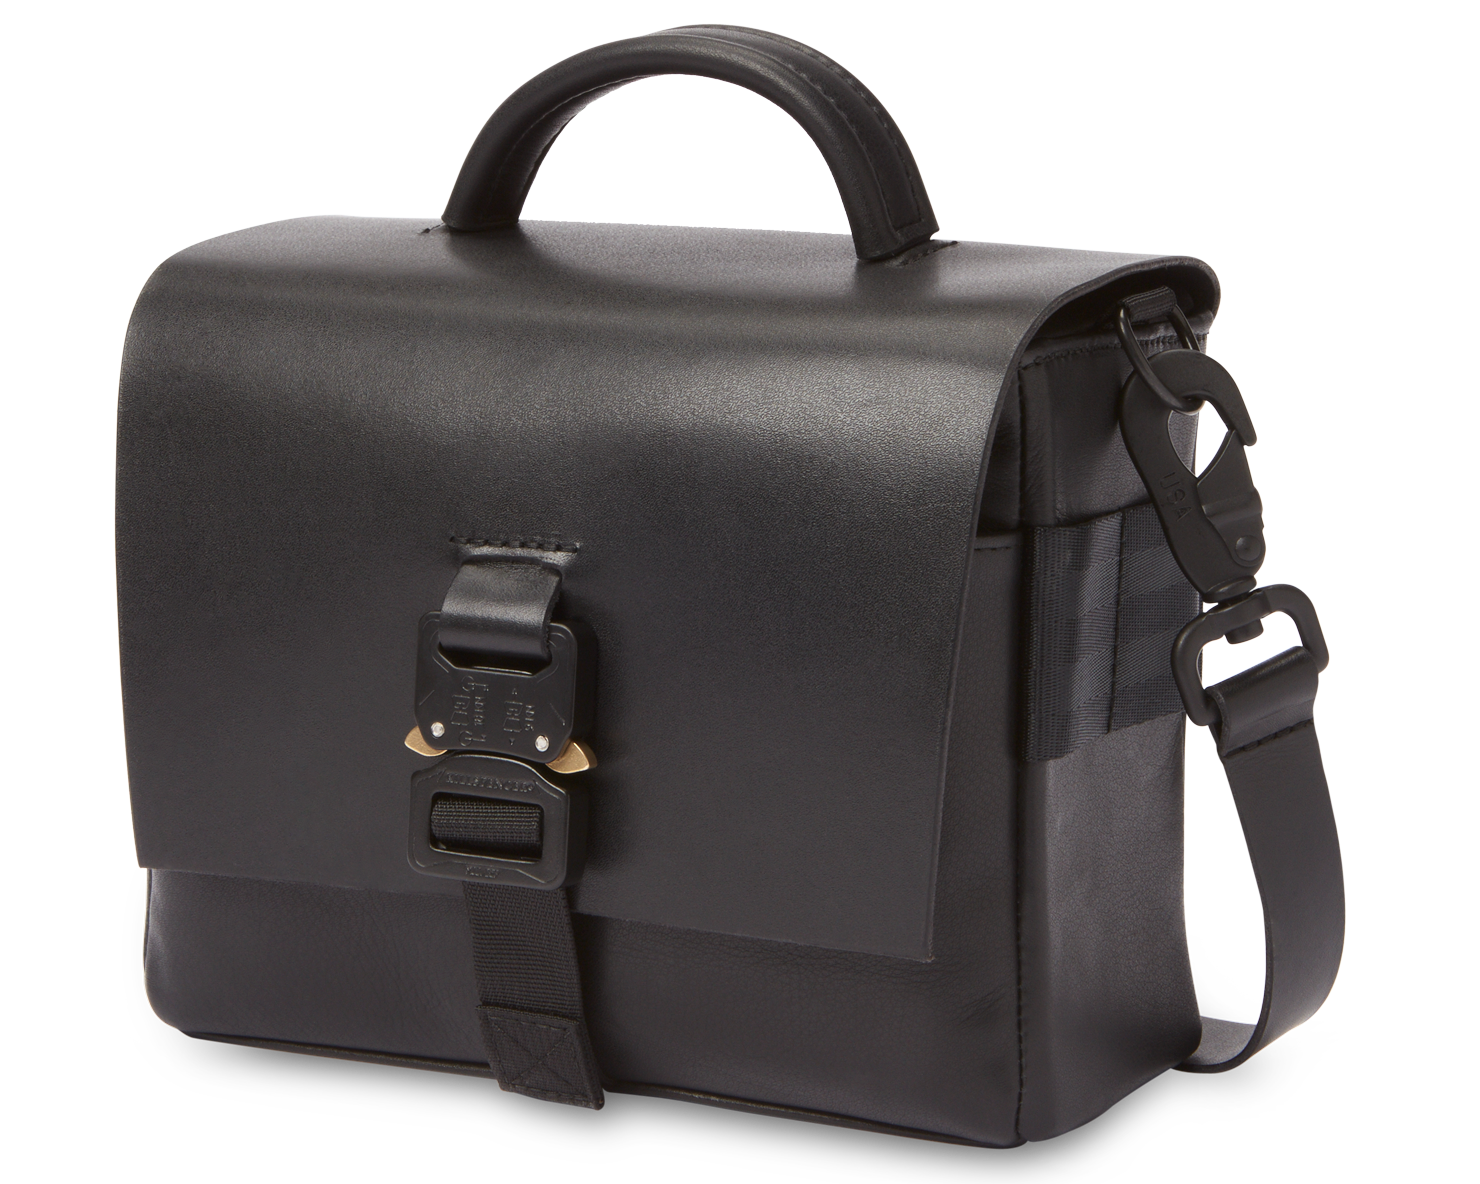 PRECISION POCKET™ MODULAR CAMERA BAG | KILLSPENCER®